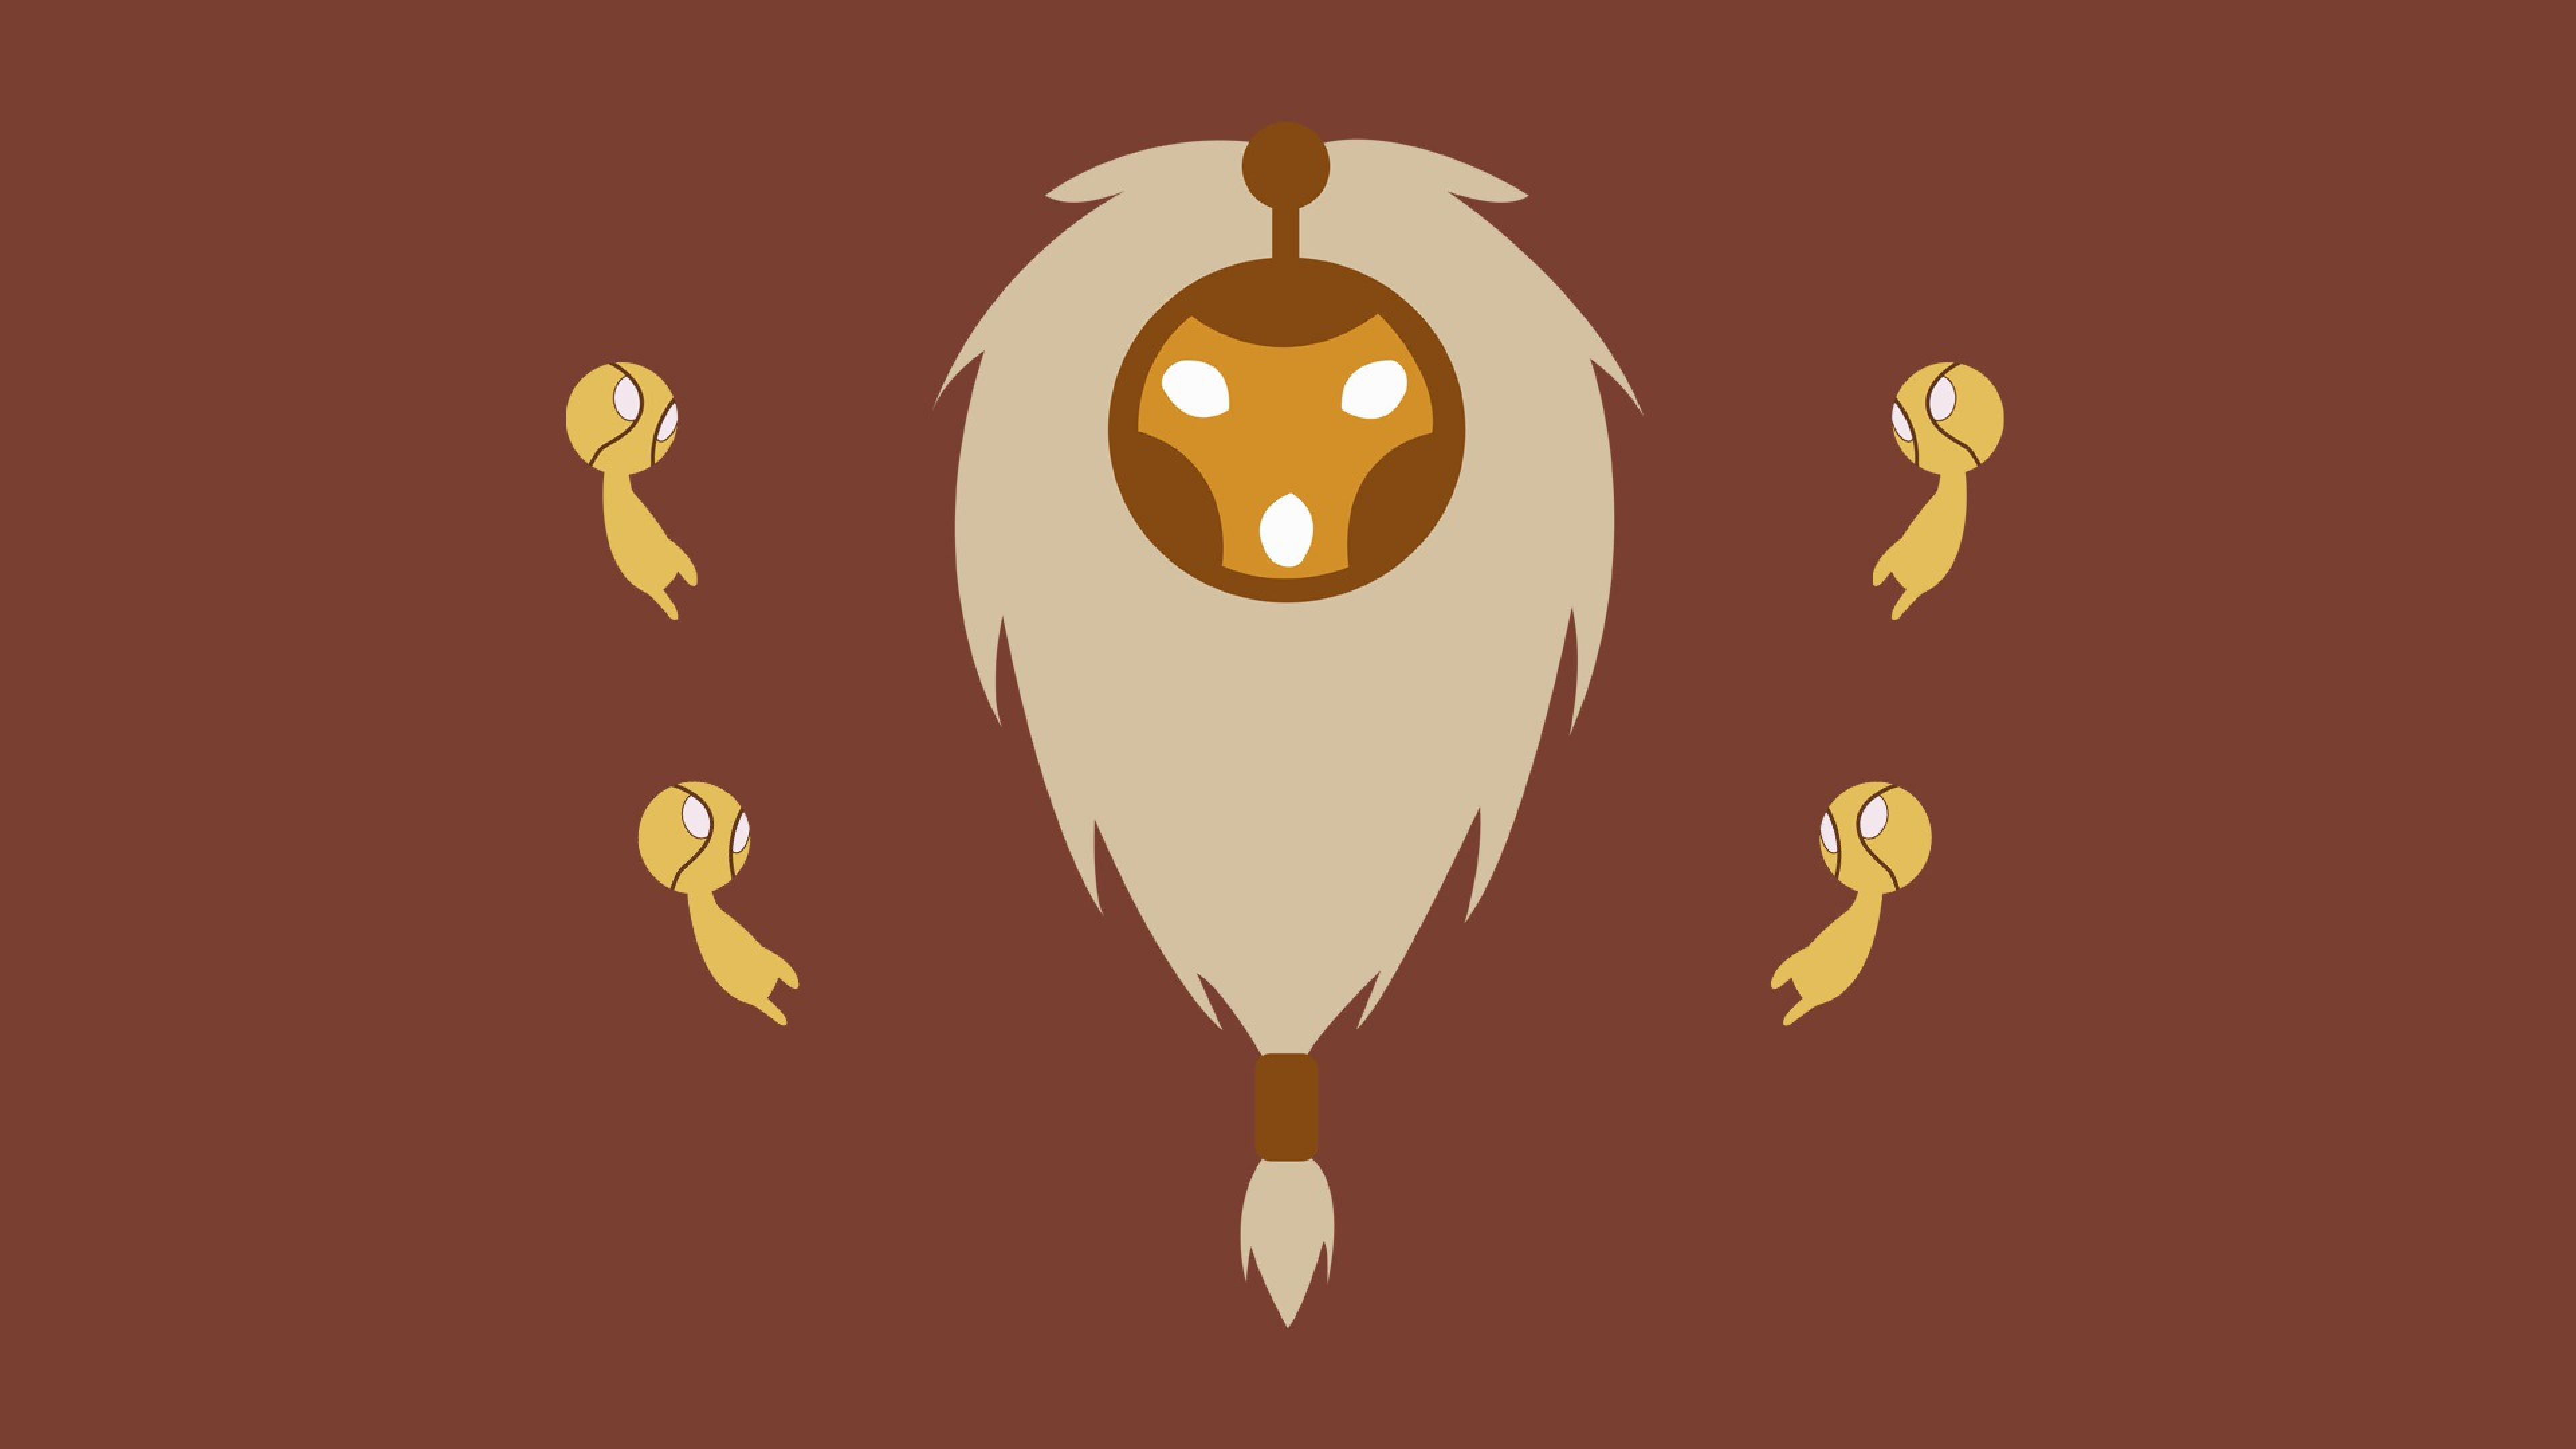 3840x2160 HD Background League Of Legends Game Minimalism Brown Wallpaper ...